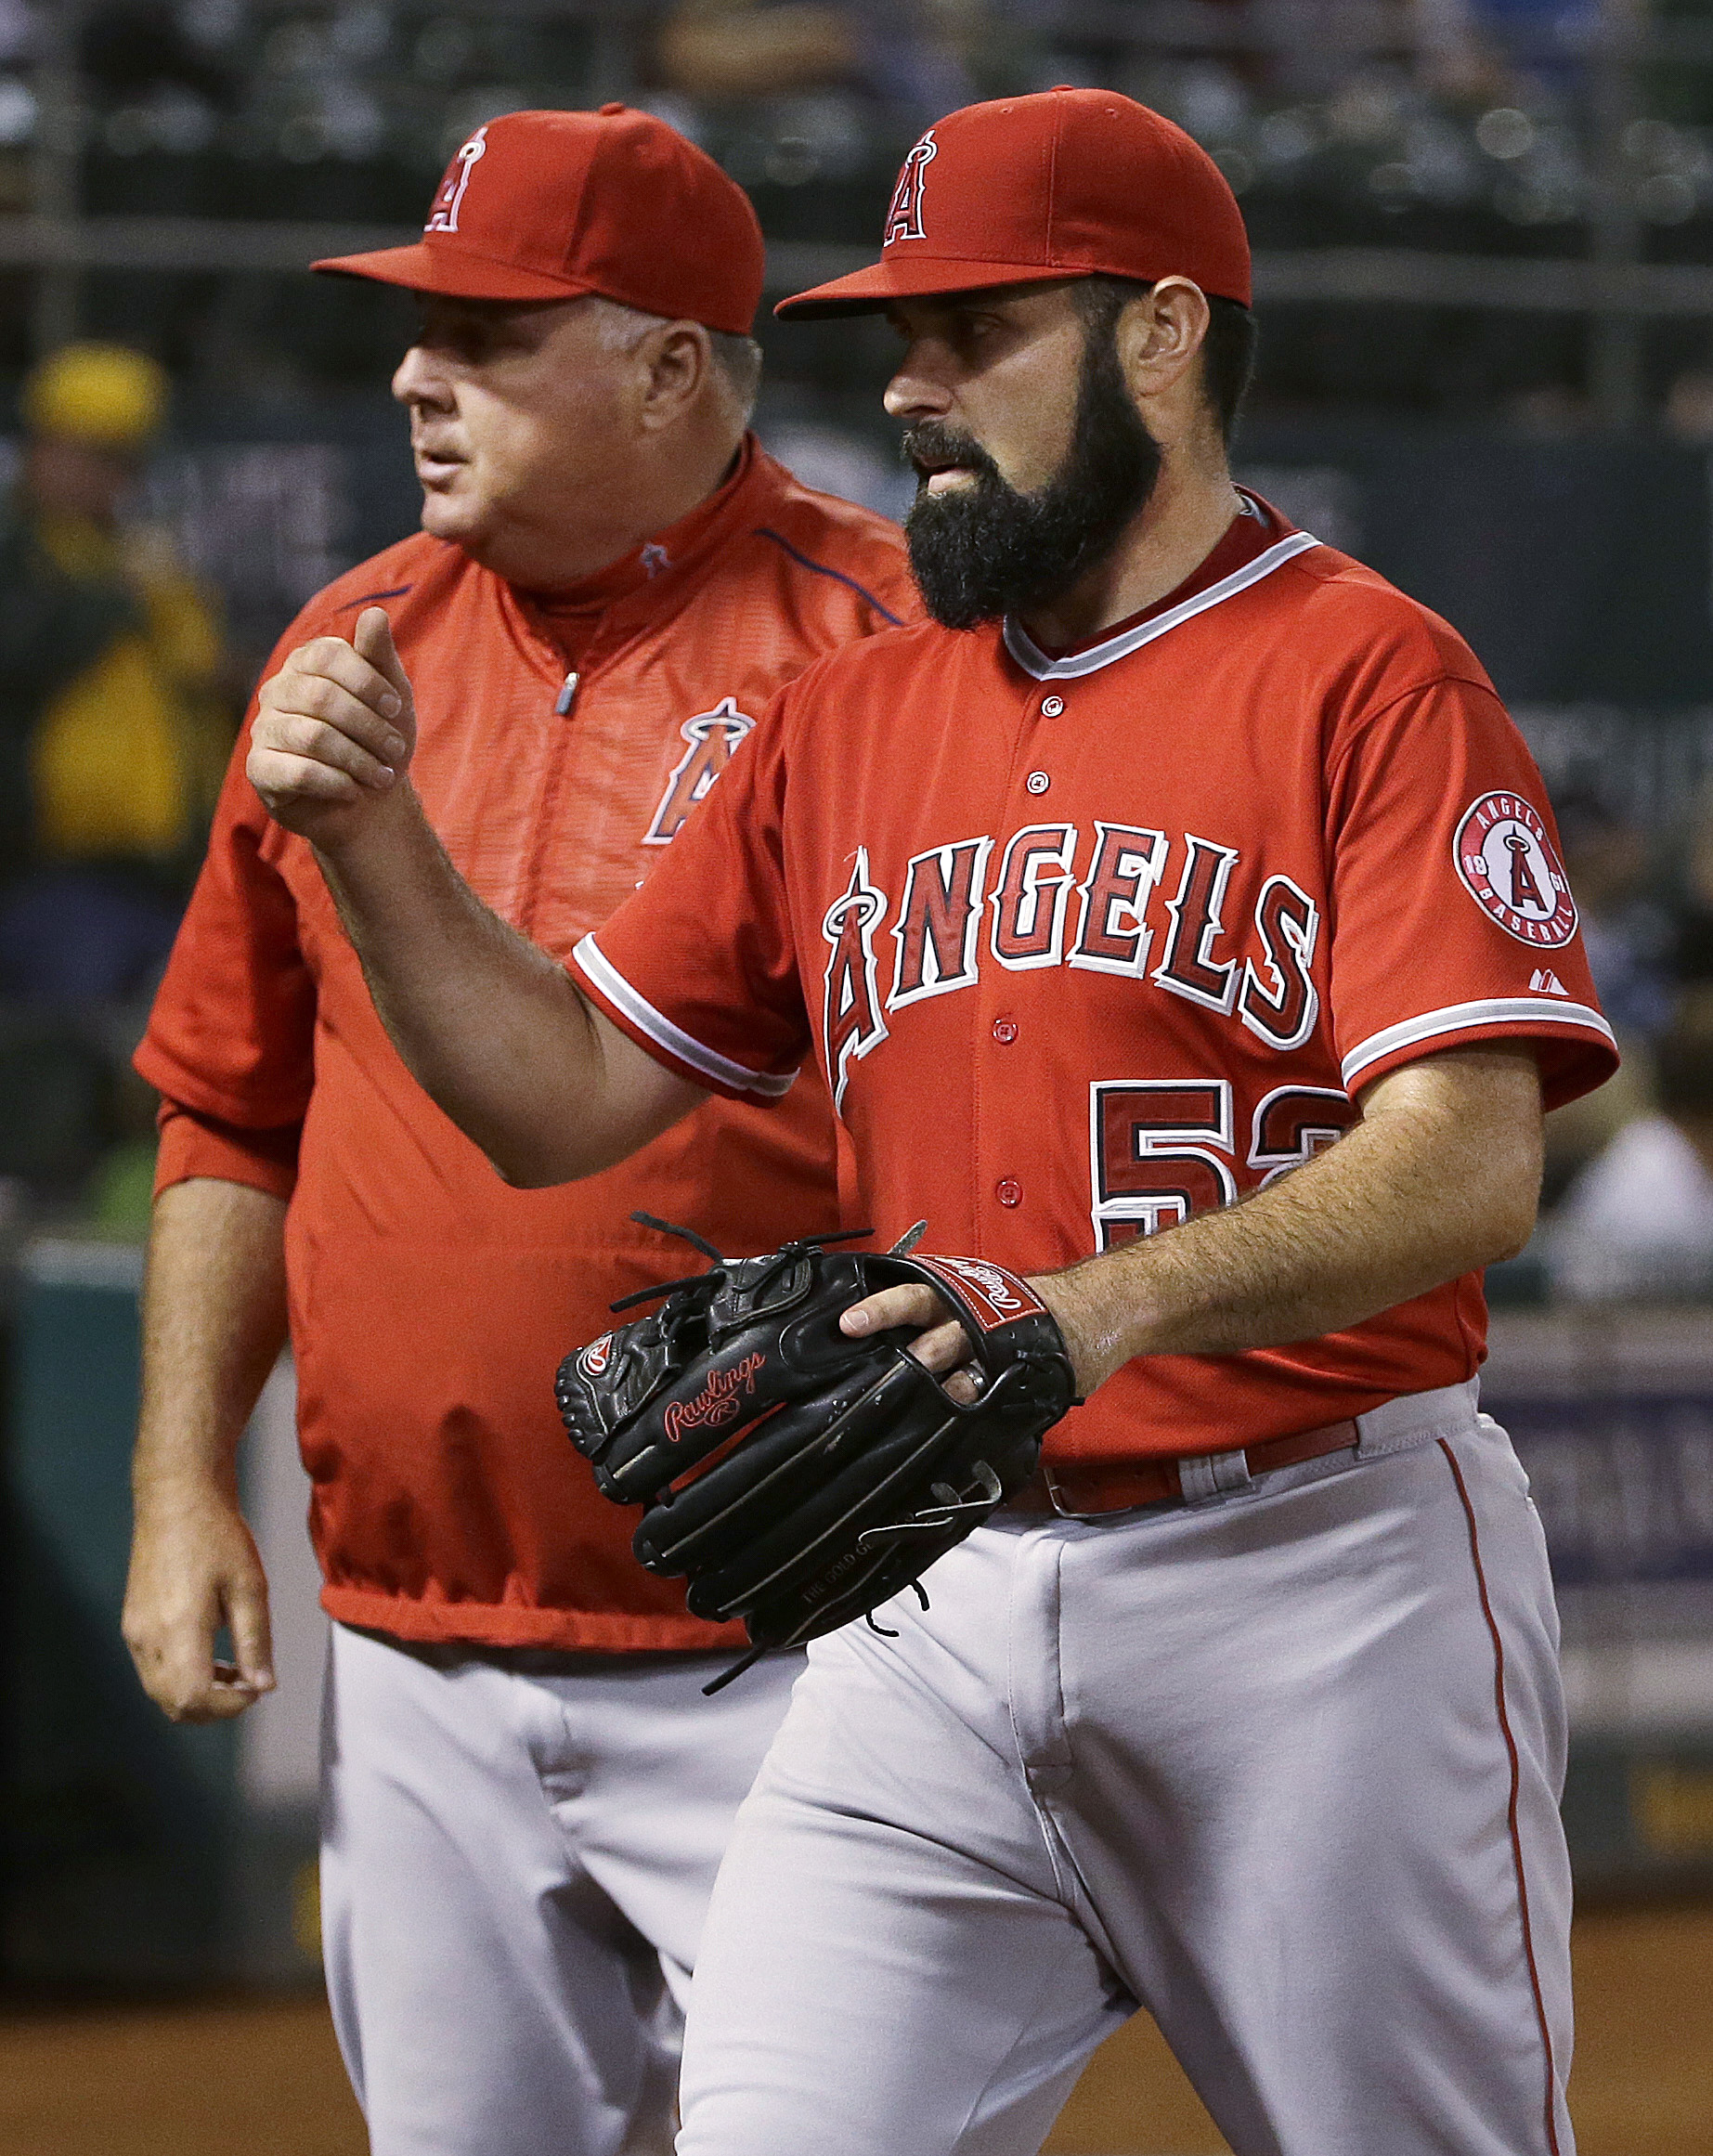 Los Angeles Angels pitcher Matt Shoemaker (52) walks toward the dugout next to manager Mike Scioscia after the seventh inning of a baseball game against the Oakland Athletics on Tuesday, Sept. 1, 2015, in Oakland, Calif. (AP Photo/Jeff Chiu)